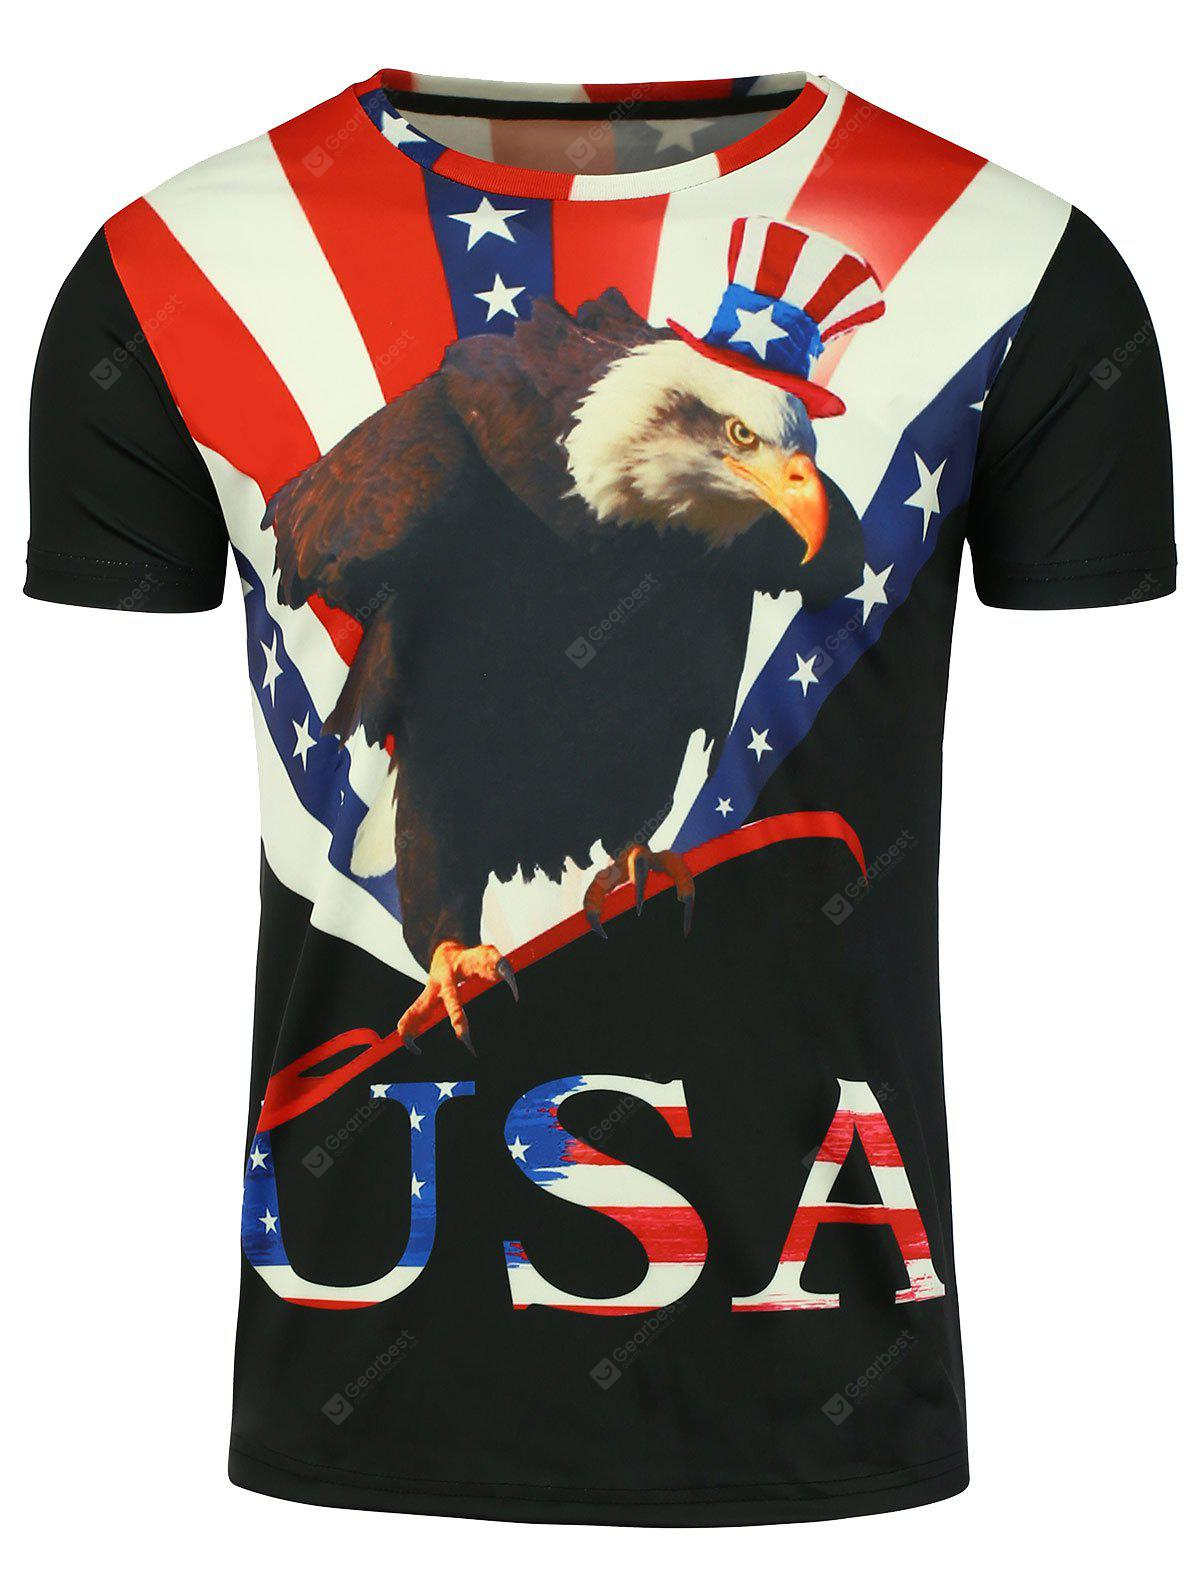 Crew Neck 3D Eagle Stampa Grafica Patriottica T-shirt